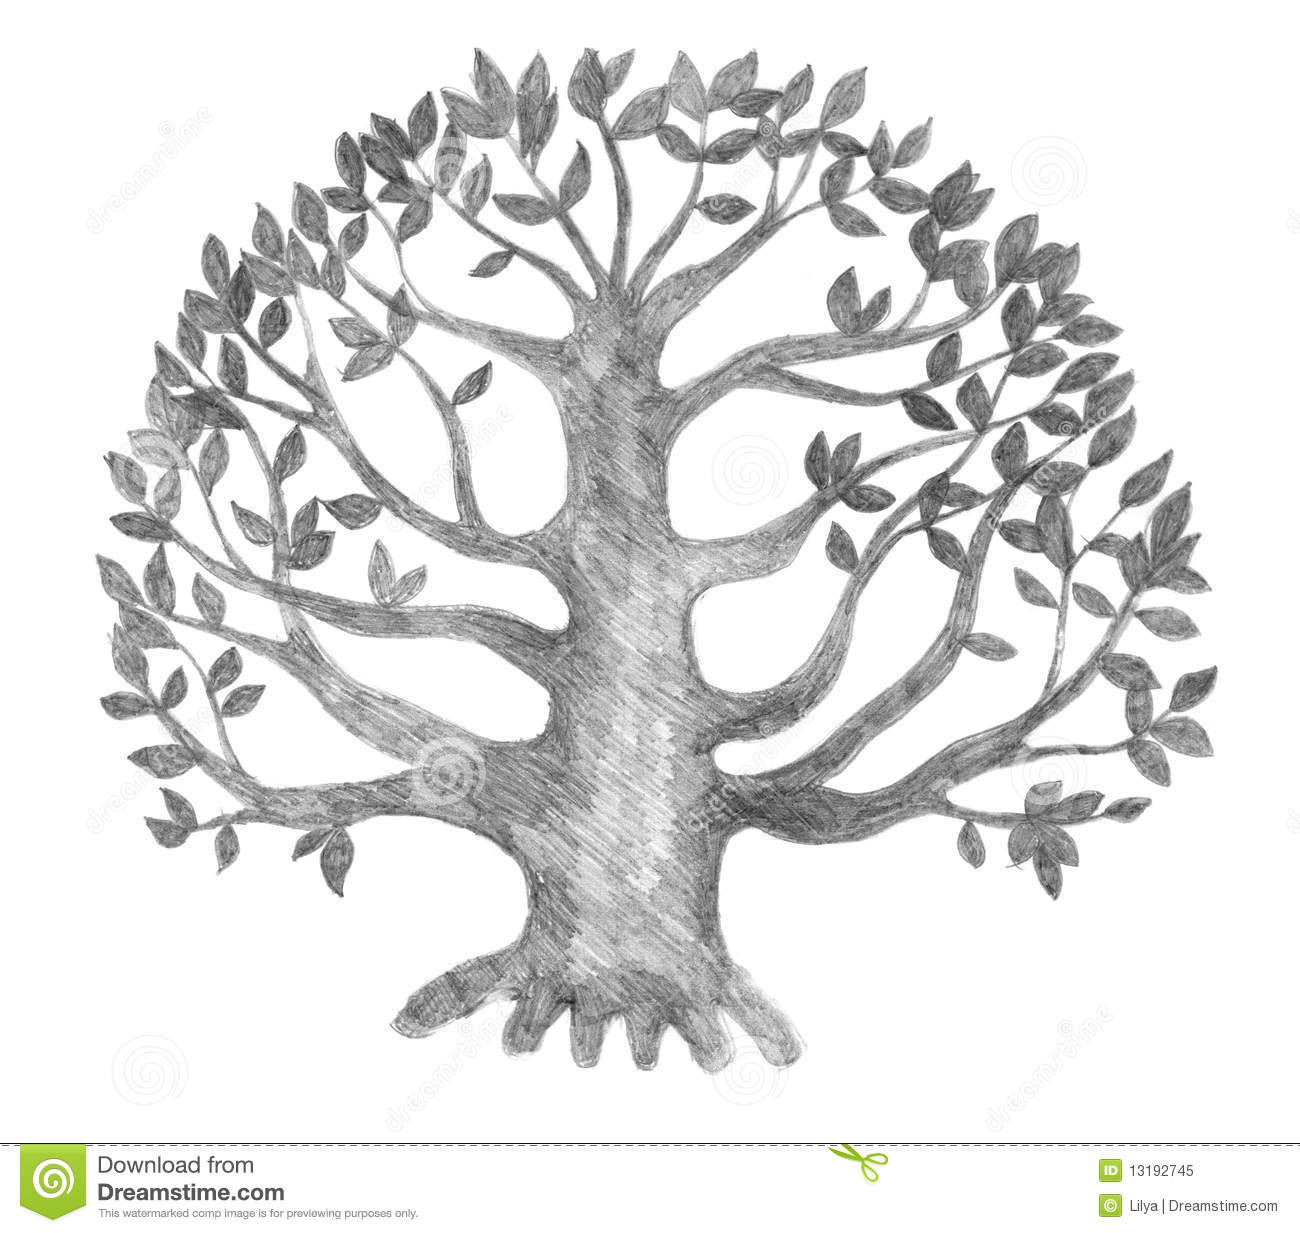 Tree of life silhouette pencil drawing illustration